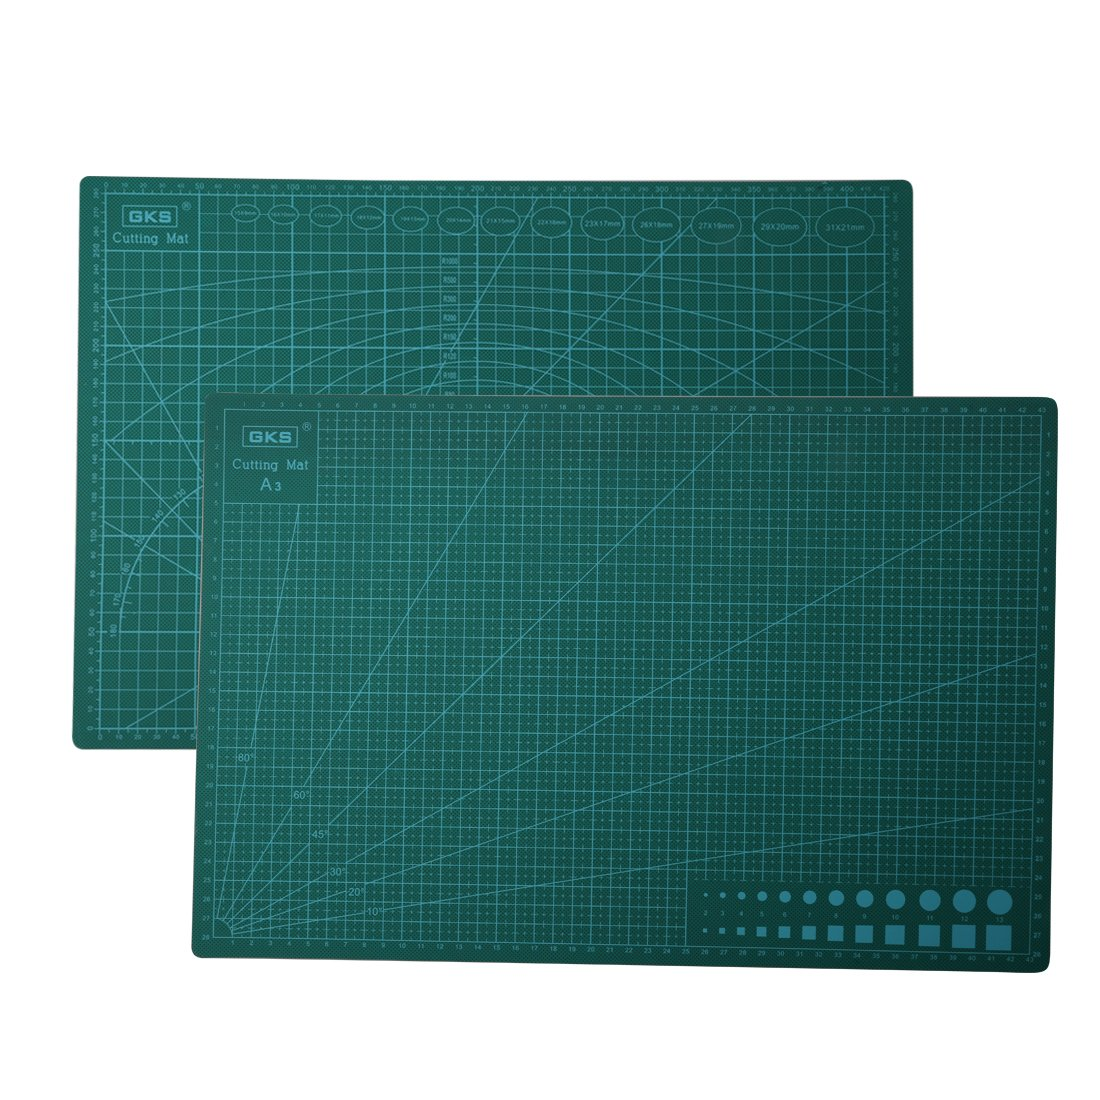 A-SZCXTOP A3 Cutting Mat& Craft Mat Double Sided Self Healing Cutting Board with Metric/Imperial 30 x 45cm - Green